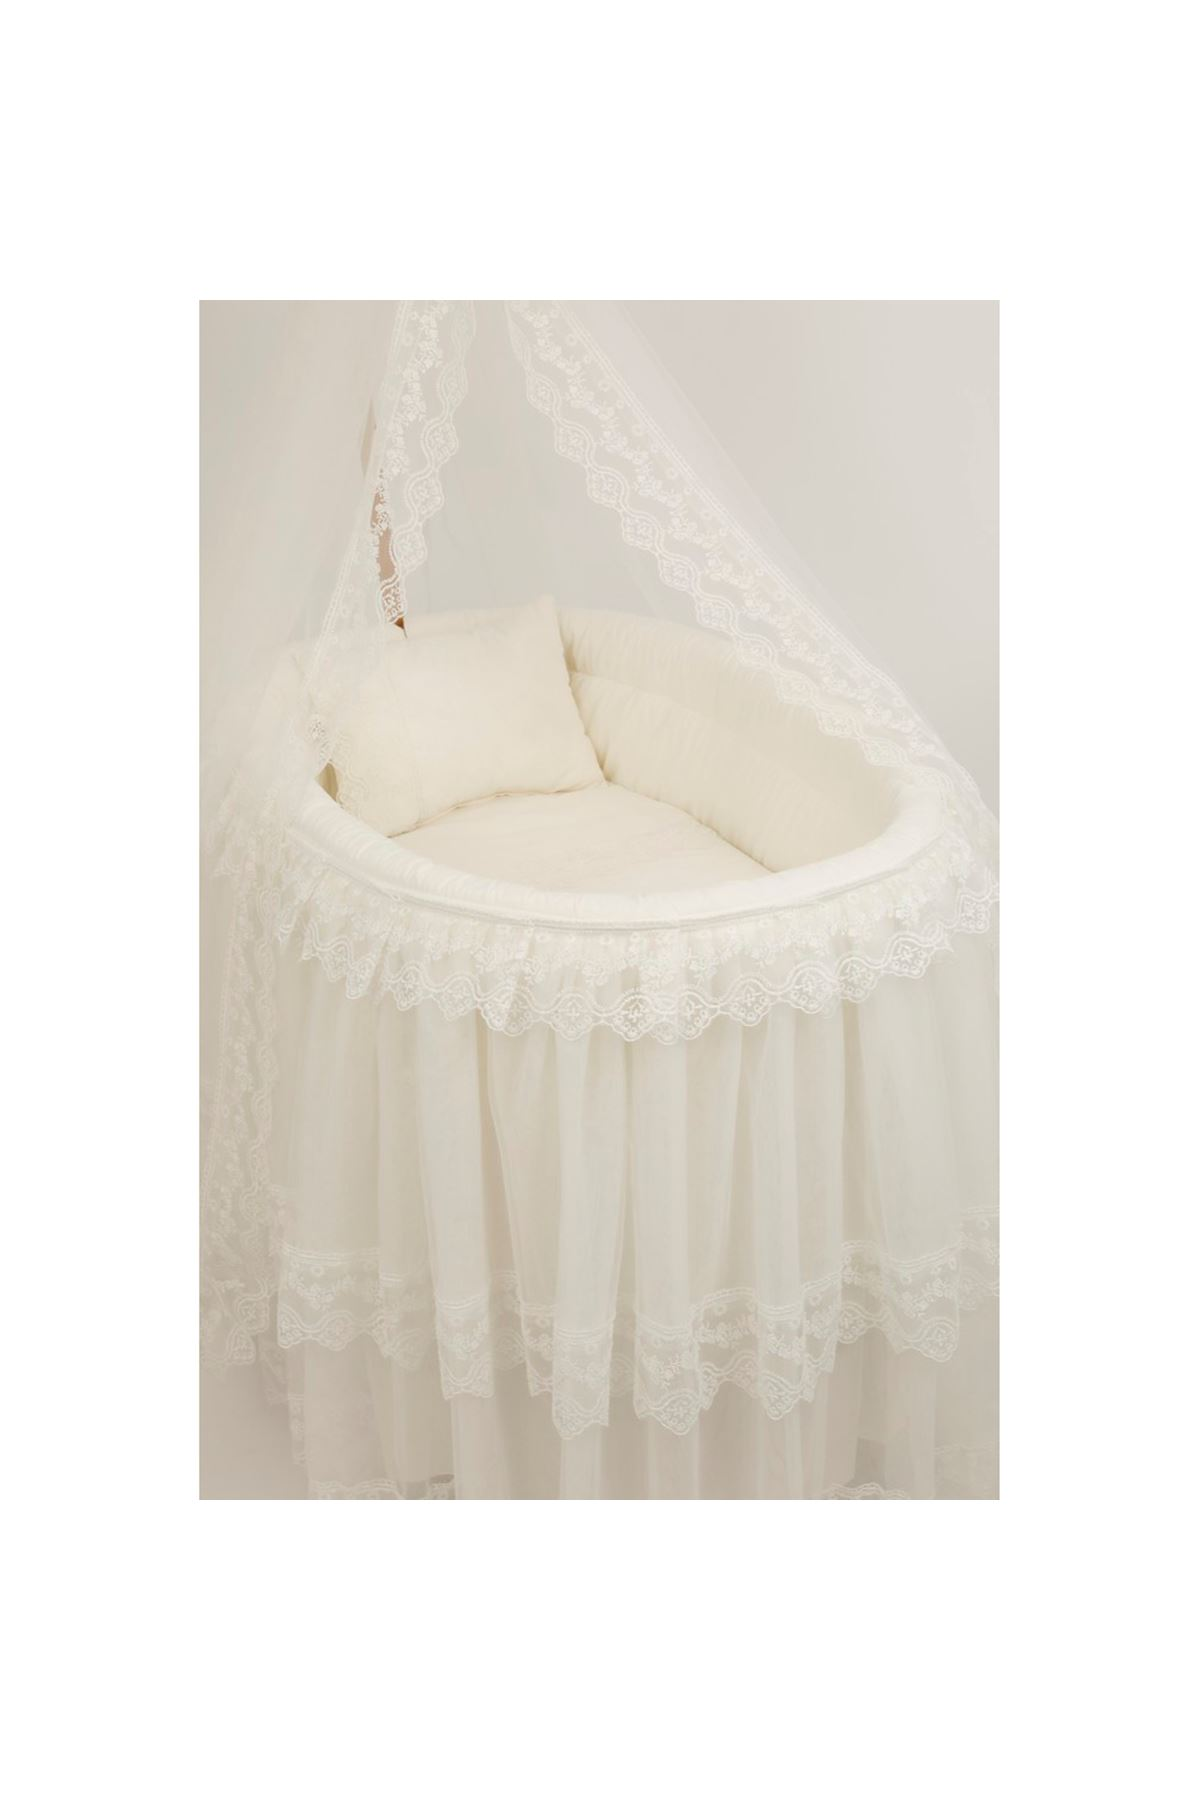 Basket Cradle with Tulle Skirt - Wood